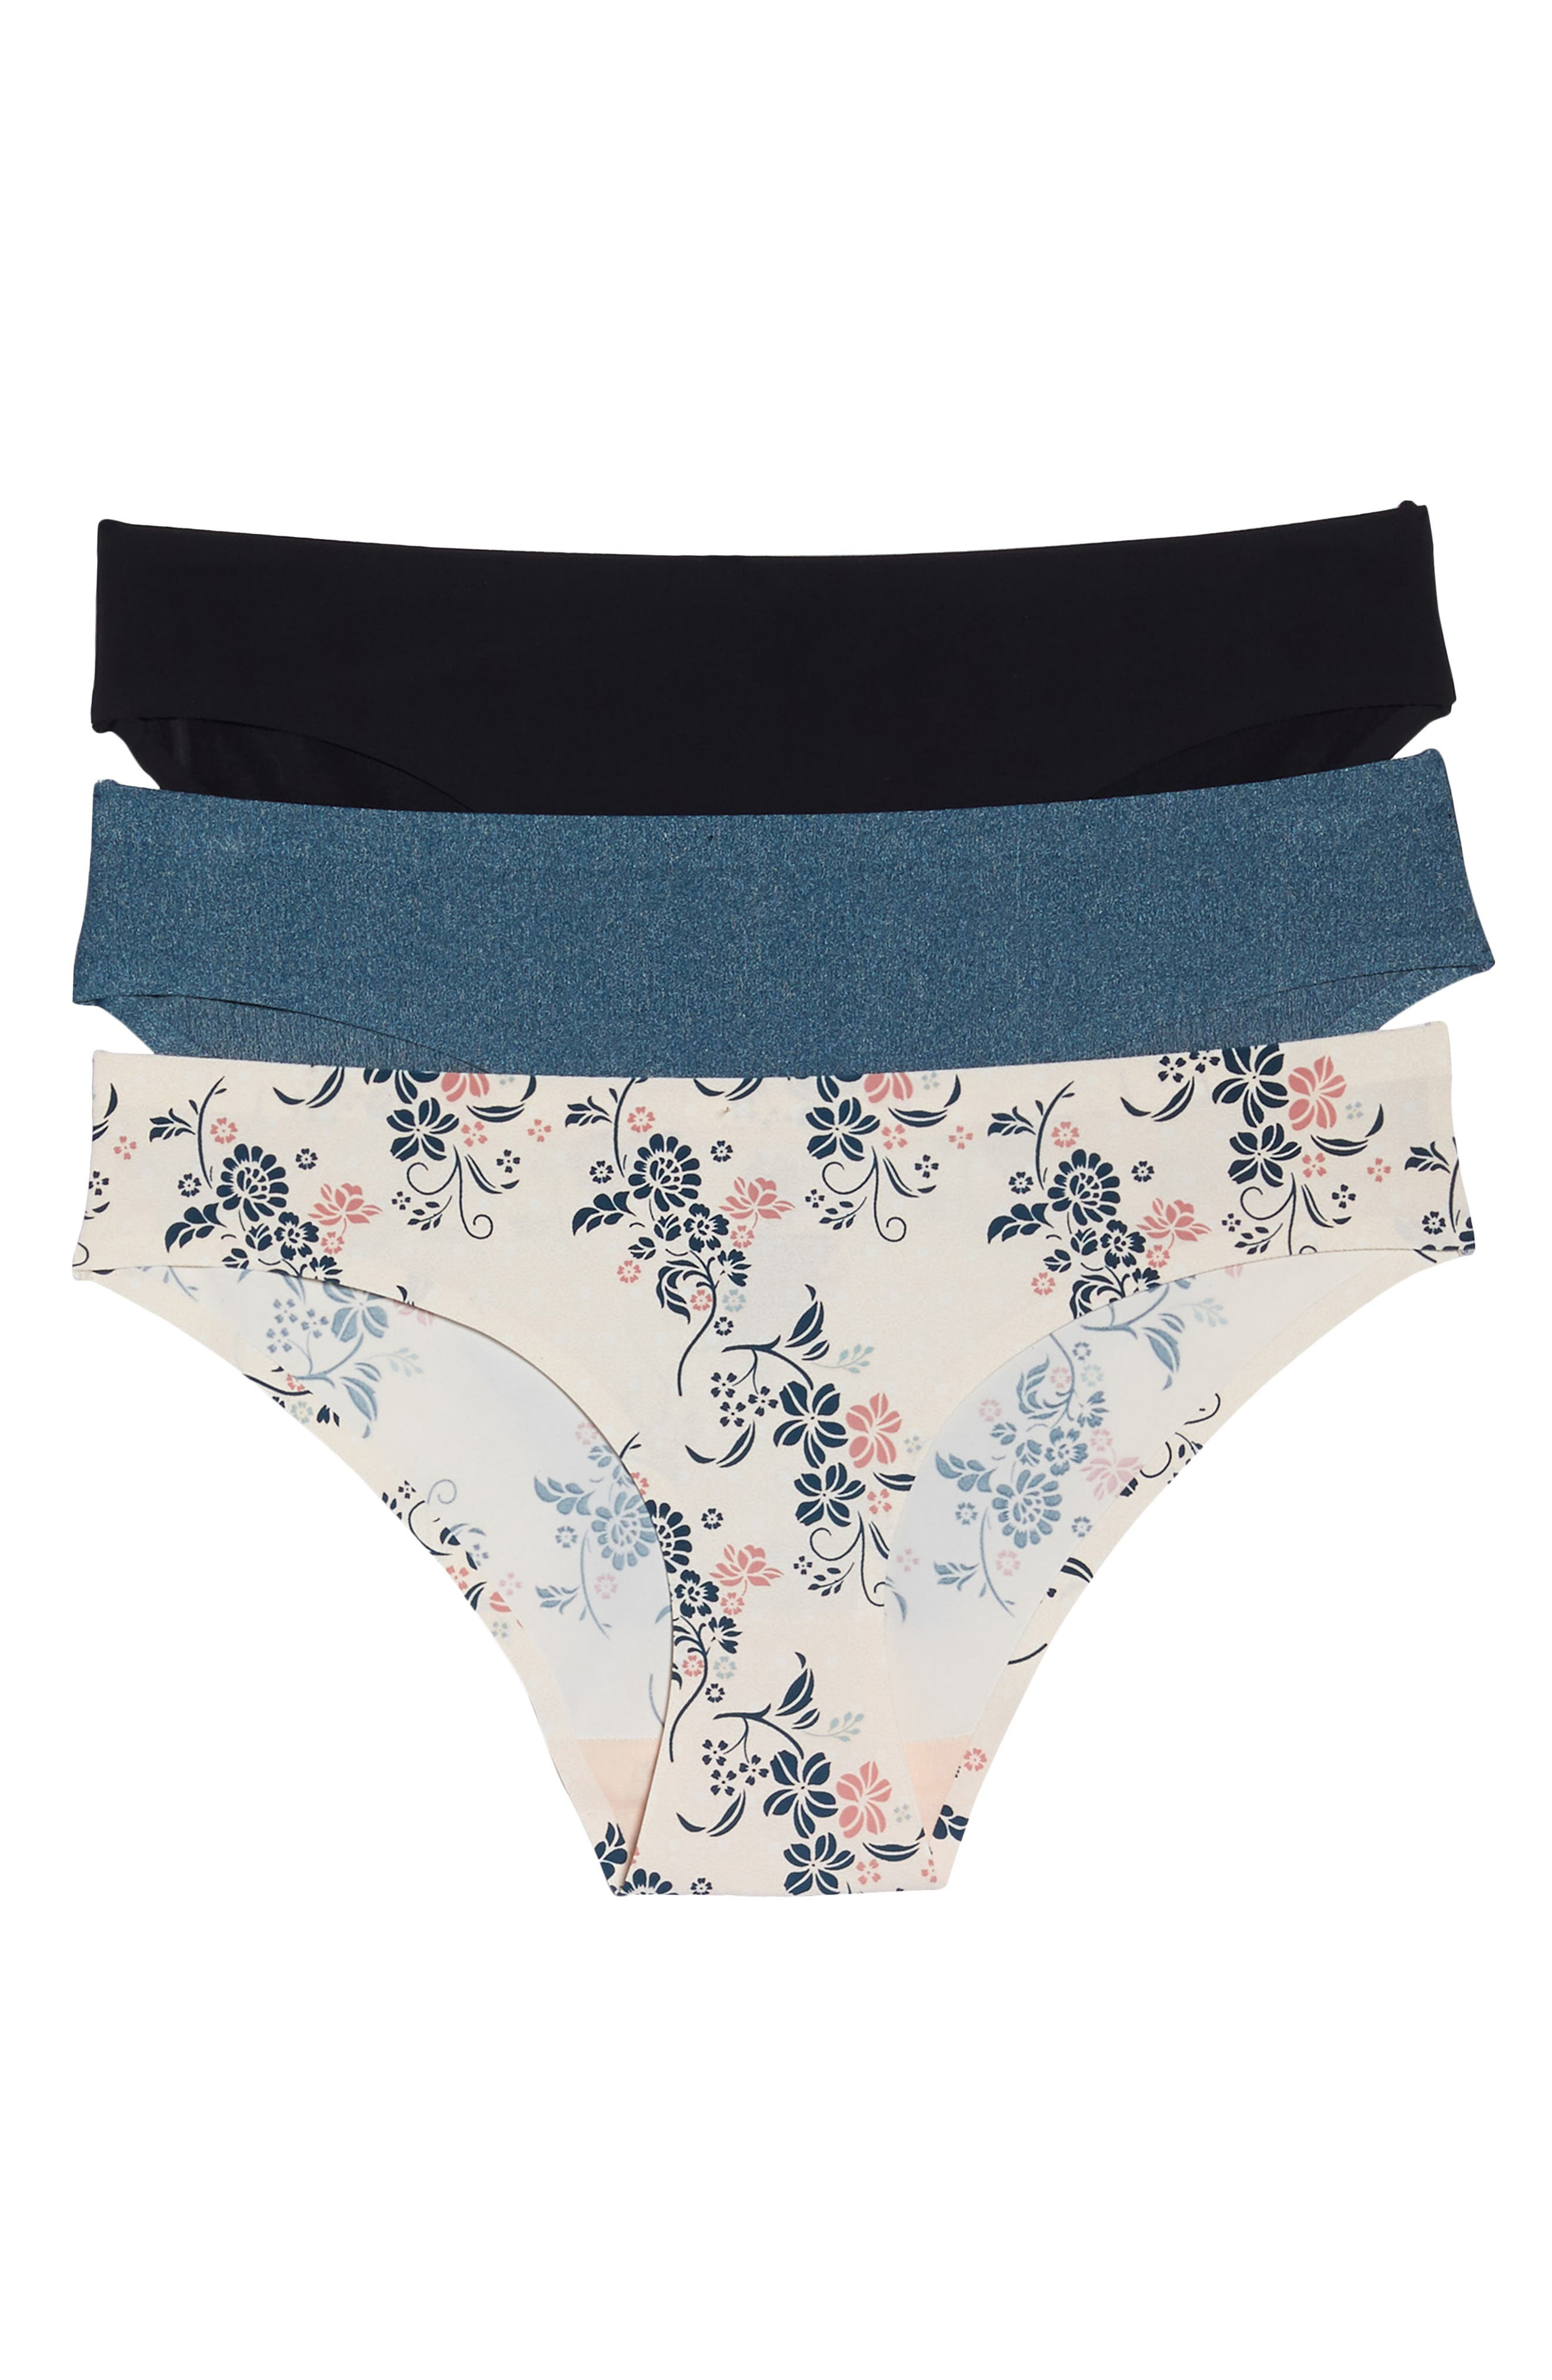 3-Pack Hipster Panties,                             Main thumbnail 1, color,                             BLACK/ SIREN/ ENERGY FLORAL